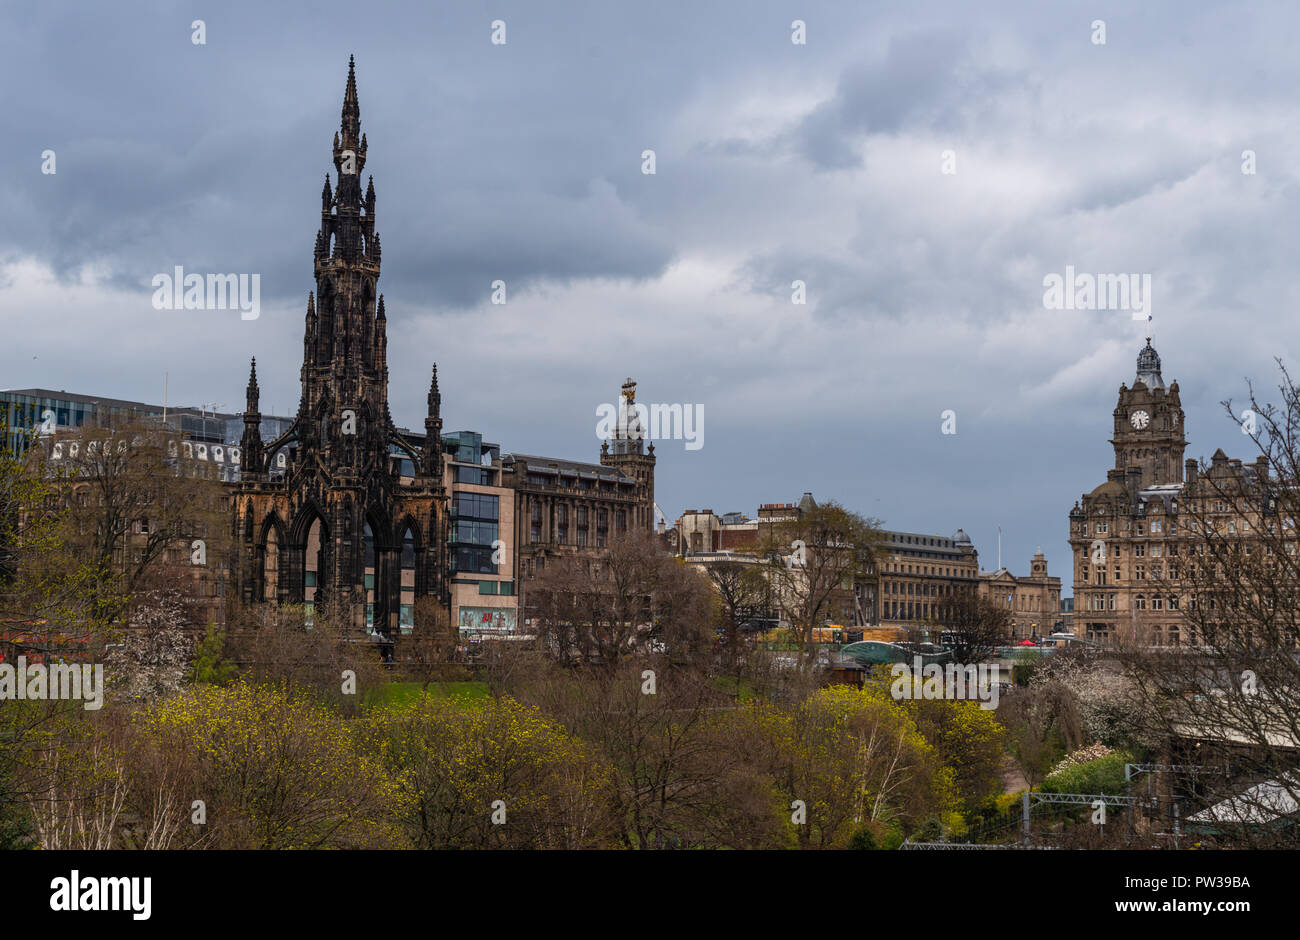 Princes Street Gardens View To Scott Monument And Balmoral